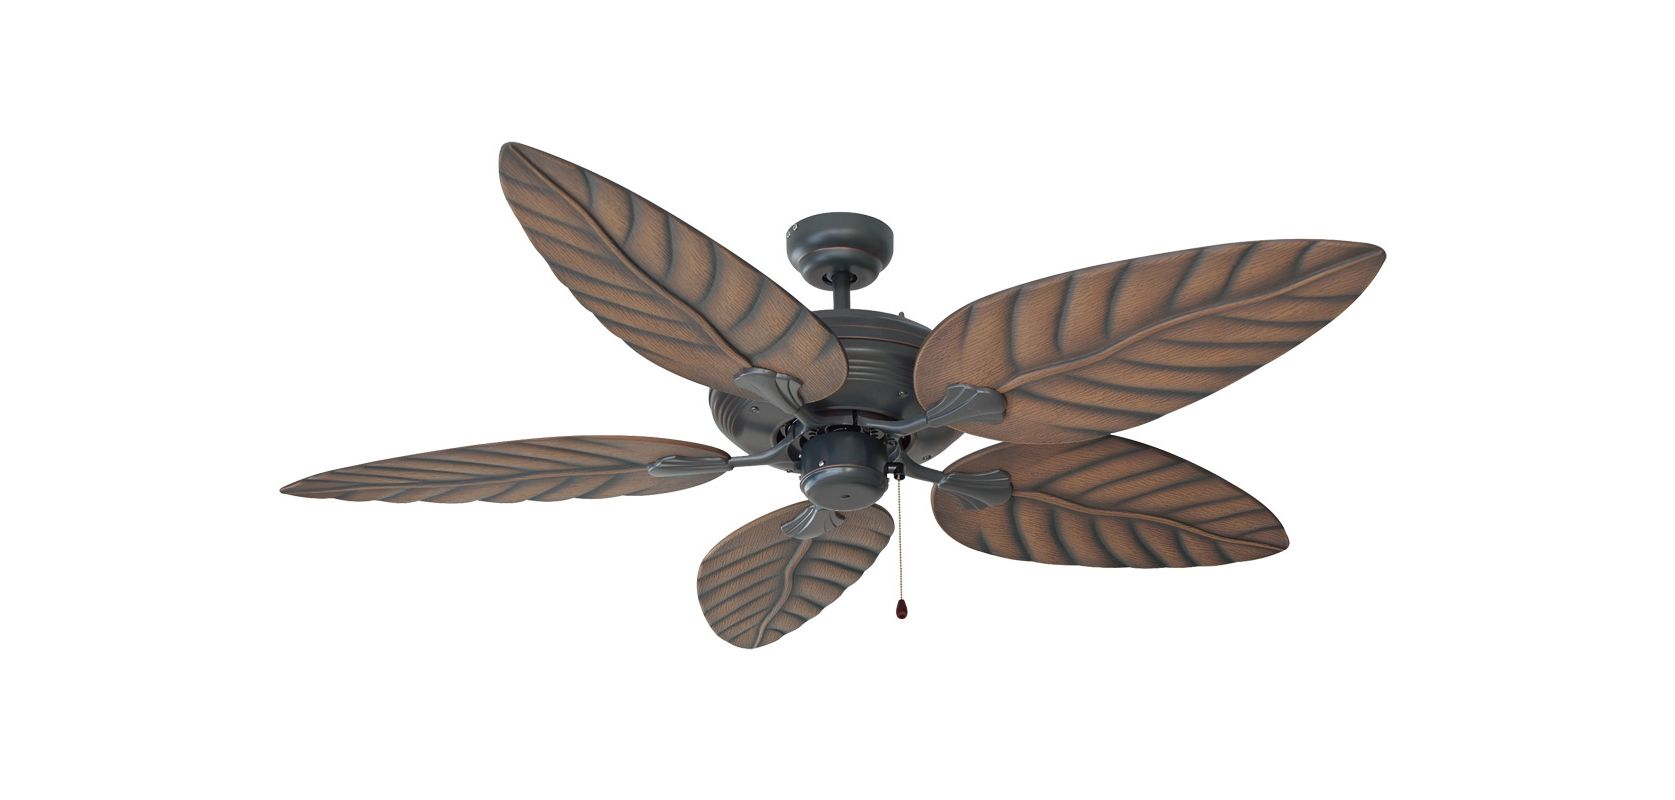 Design House 154104 Oil Rubbed Bronze 52 5 Blade Ceiling